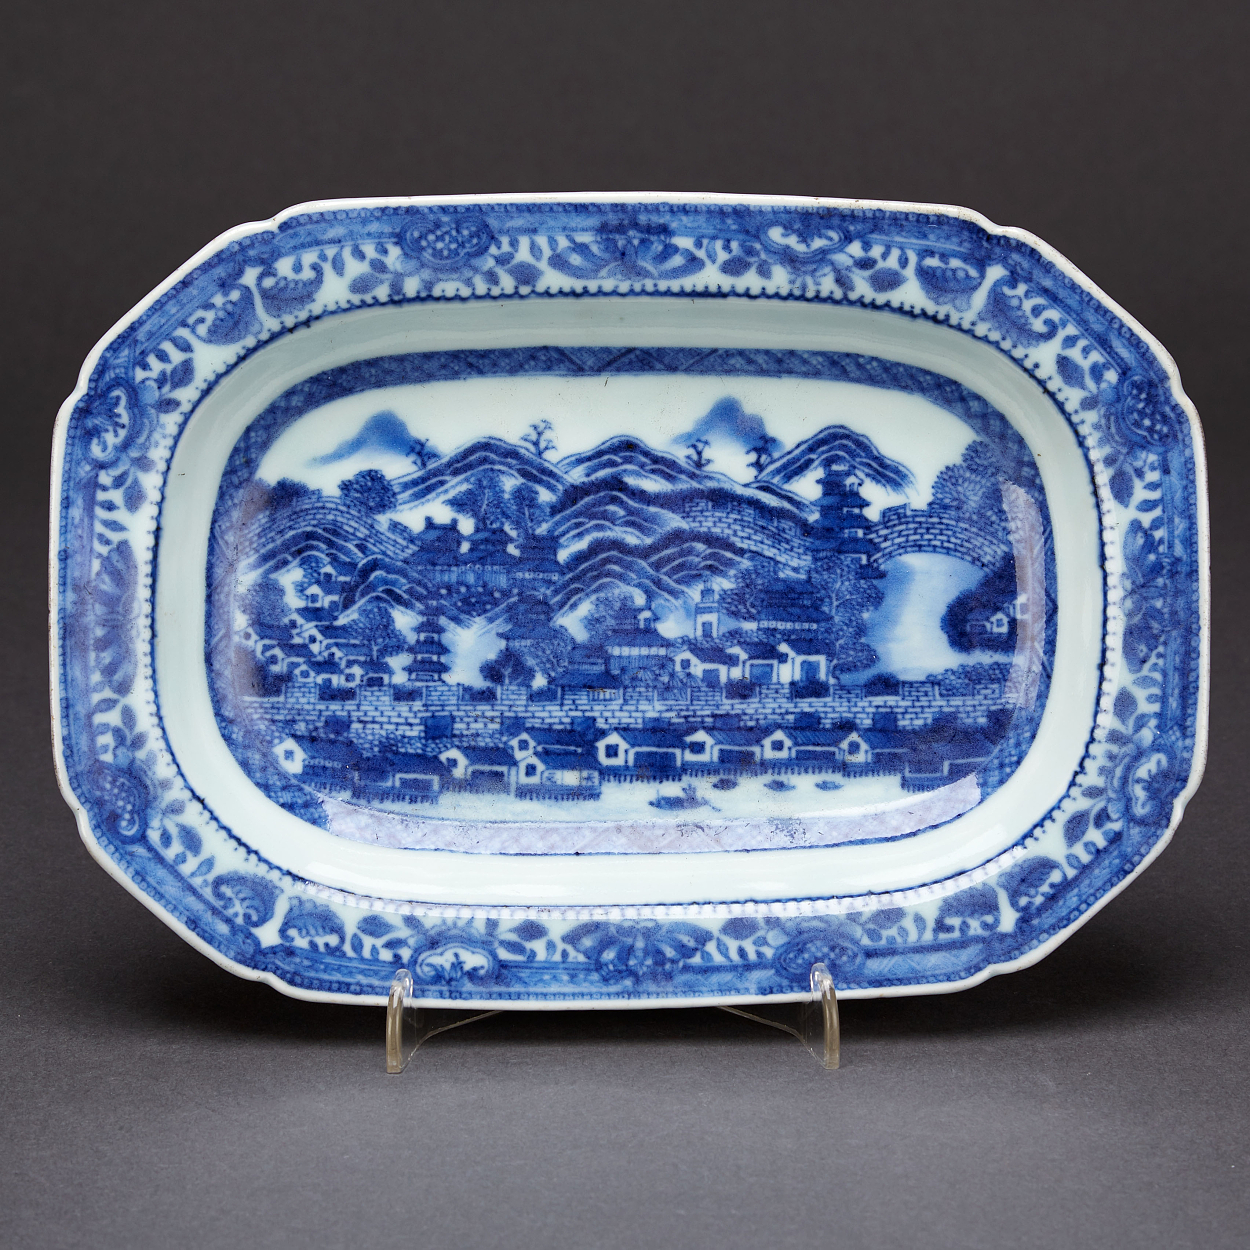 A Blue and White Octagonal Dish